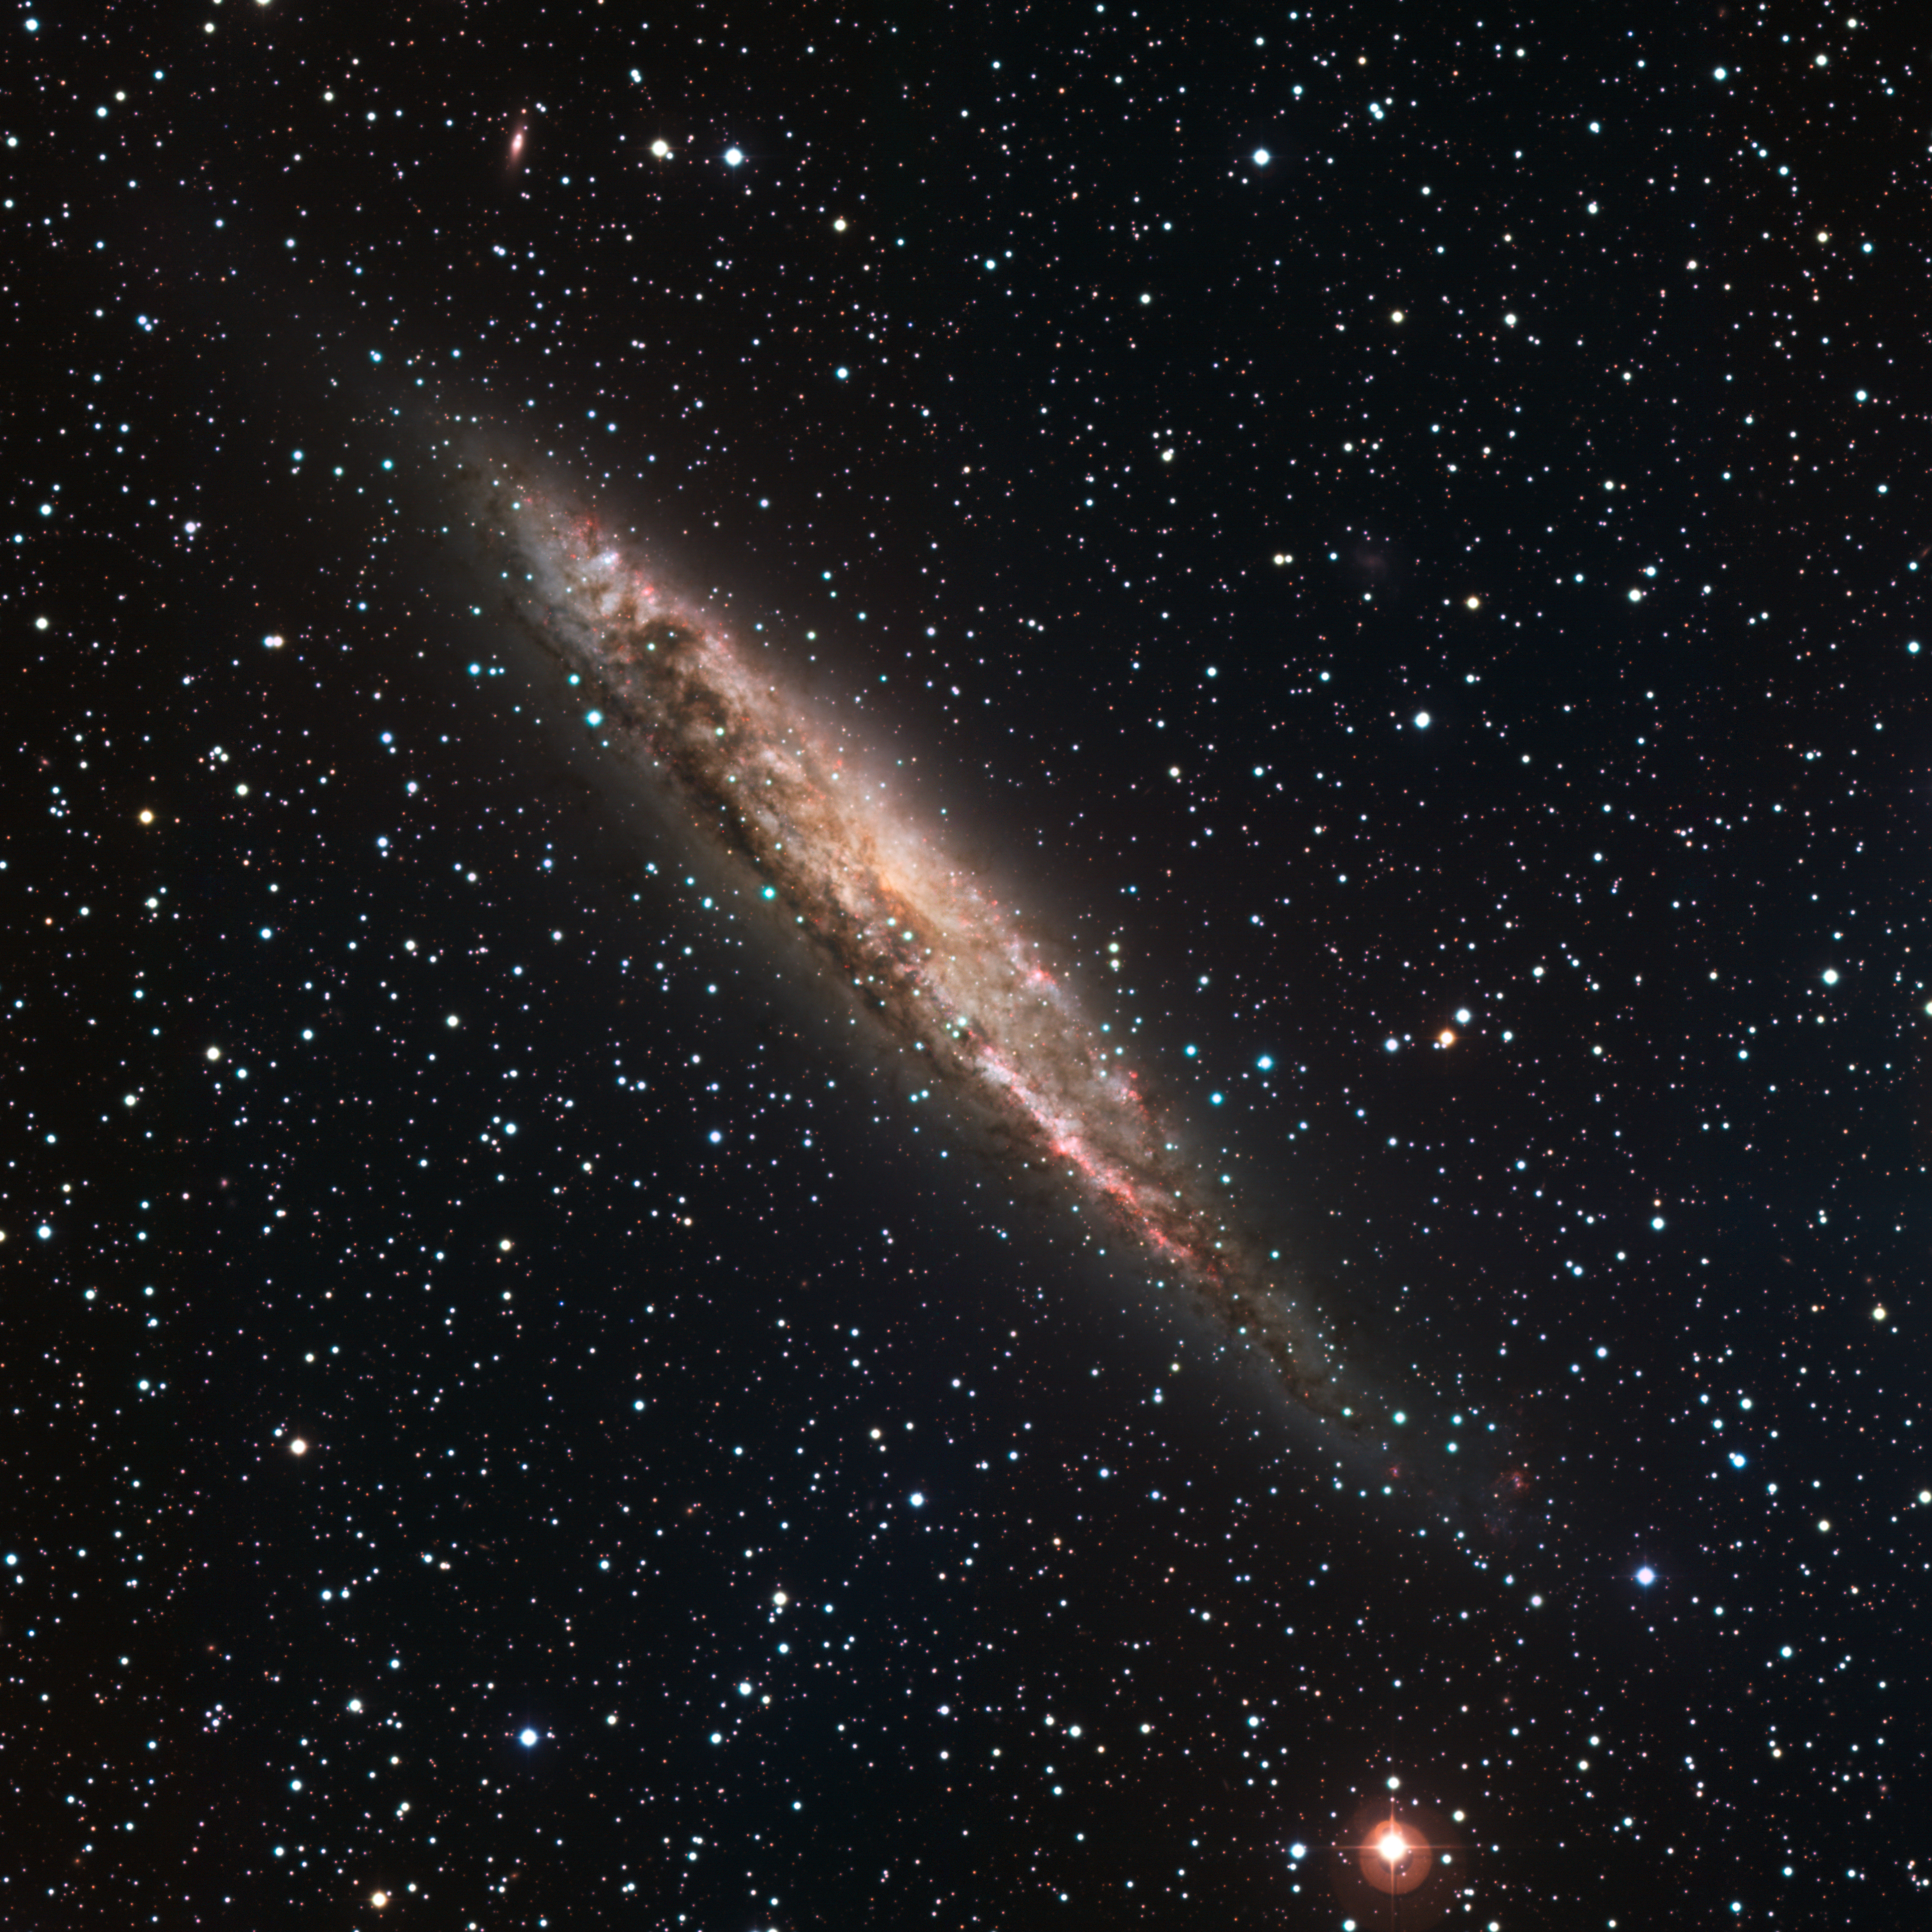 Depiction of NGC 4945